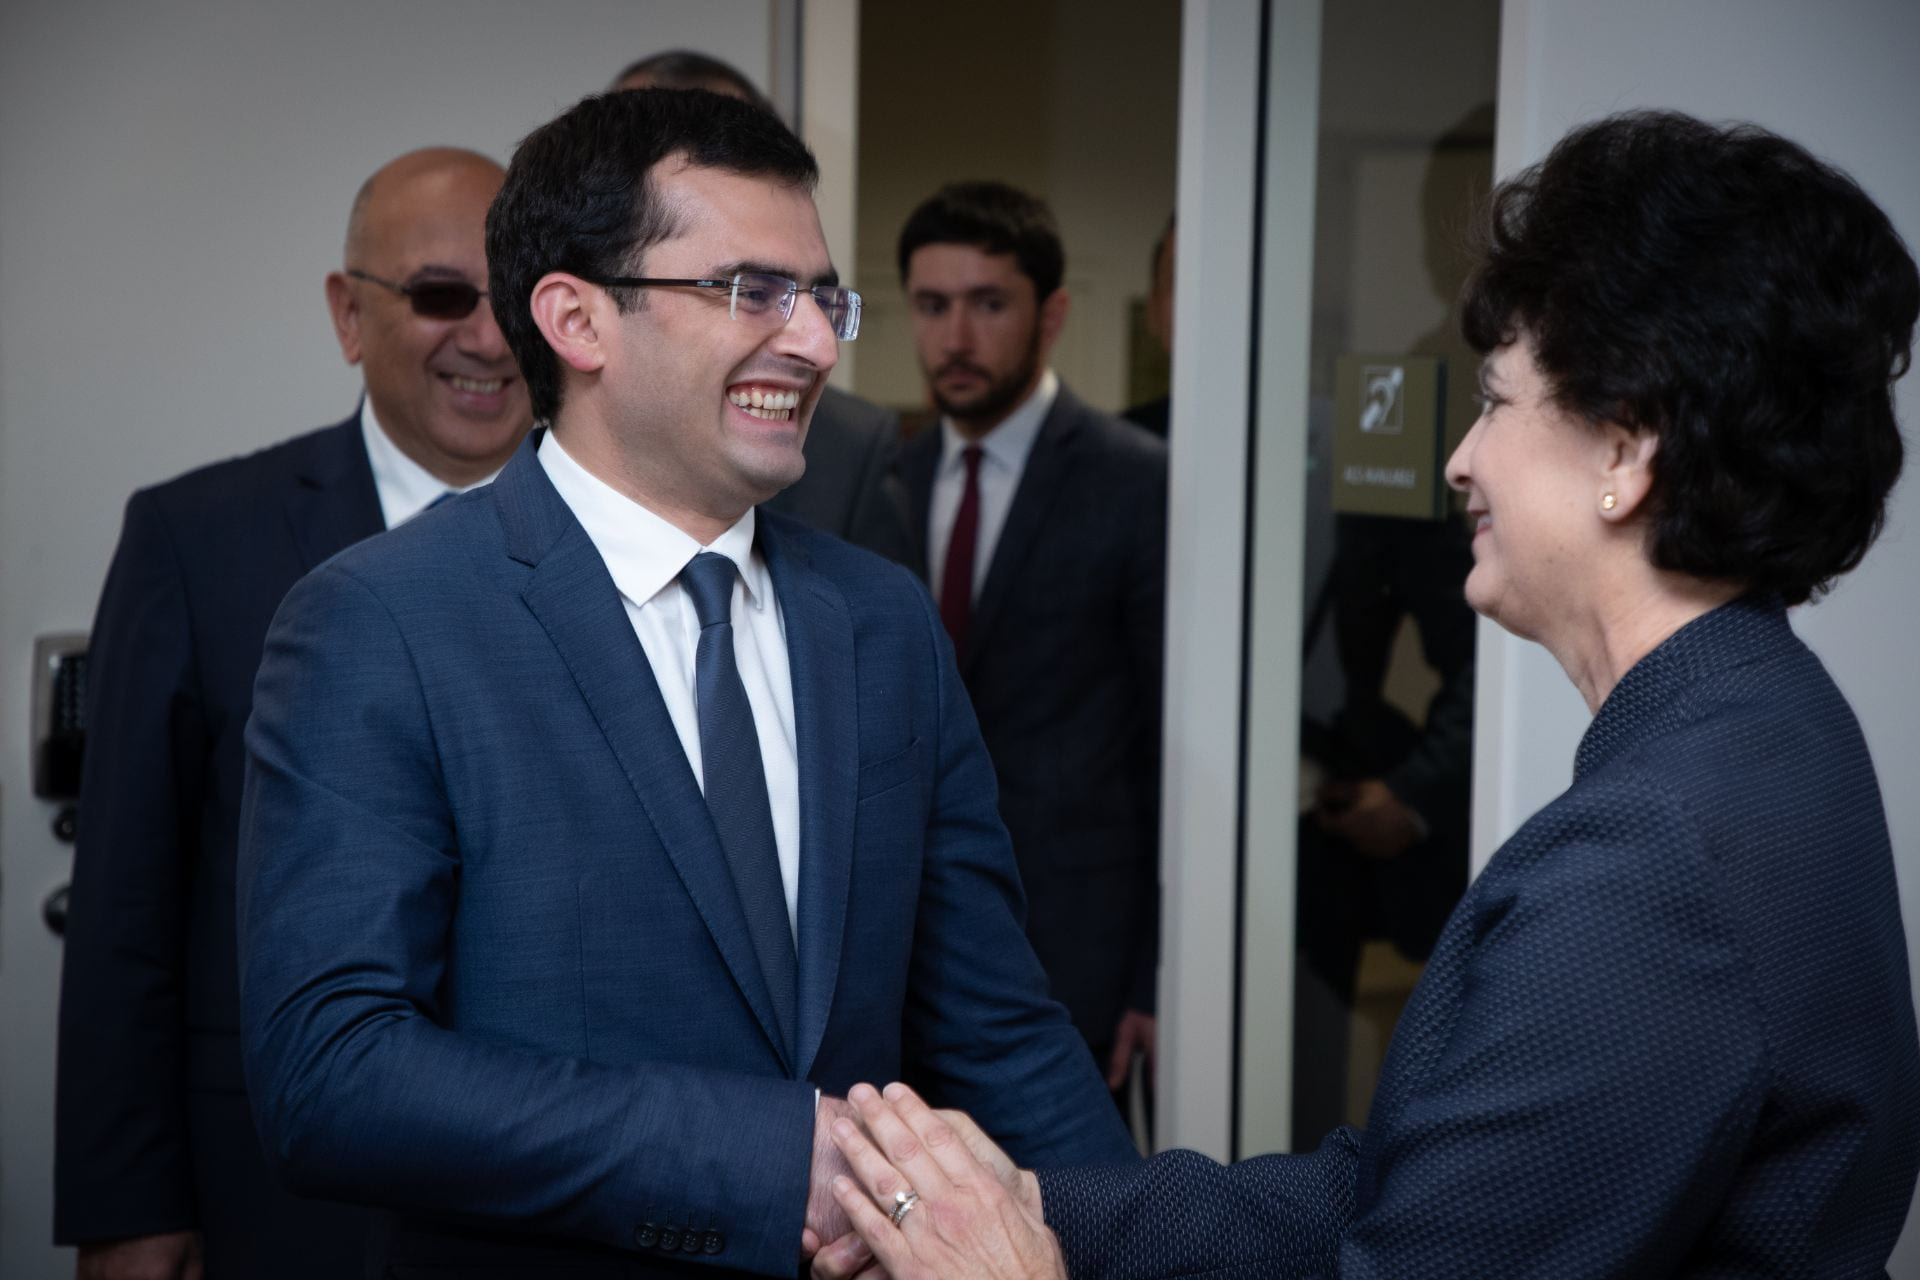 Mary Papazian, San JoseŽ State University President, greets Hakob Arshakyan, Armenia minister of high-technological industries, as she meets with local and Armenian tech leaders on campus May 29, 2019. (Photo: Jim Gensheimer)